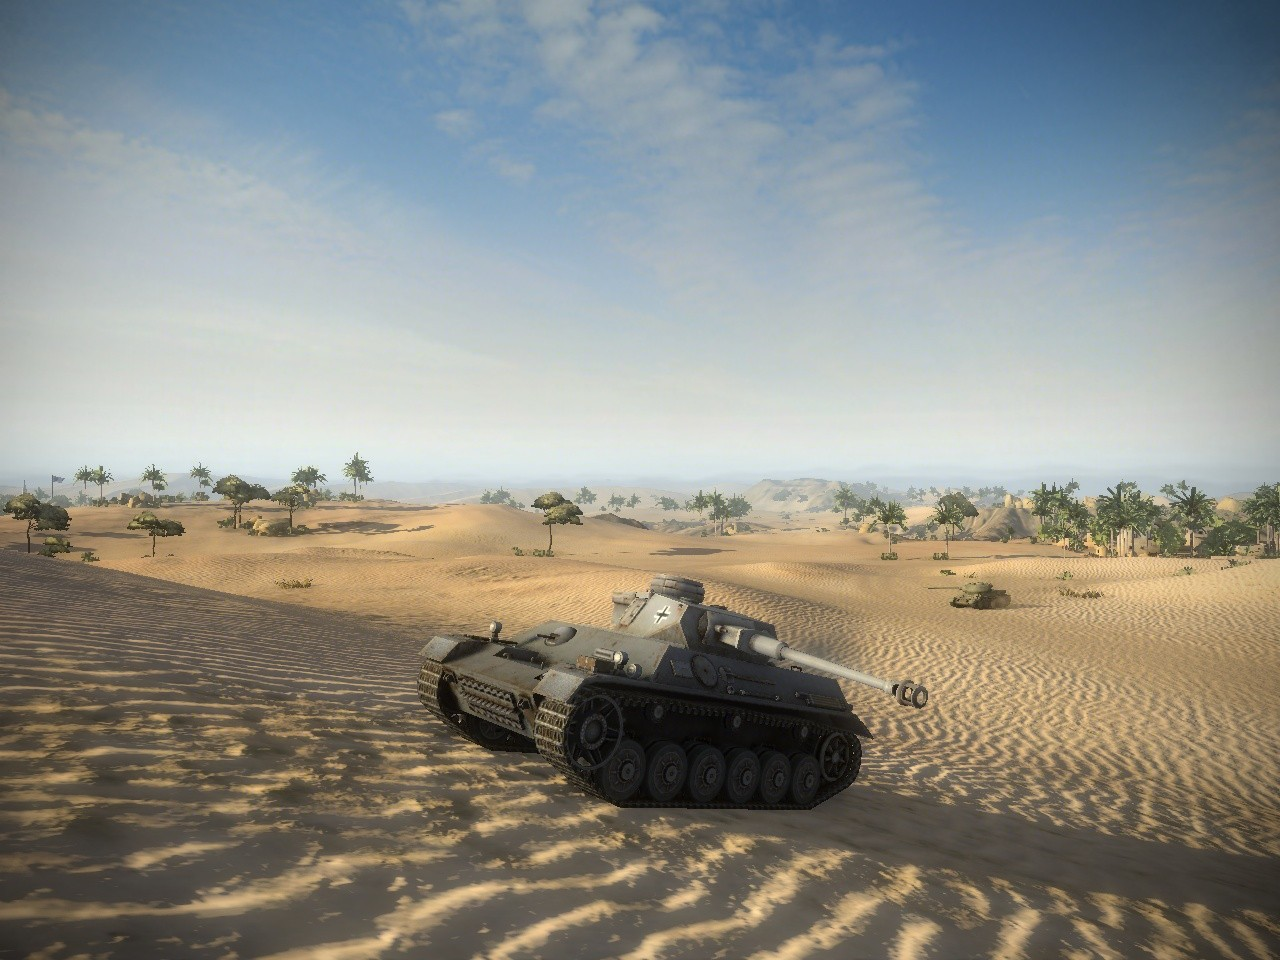 World of Tanks - PzKpfw III/IV